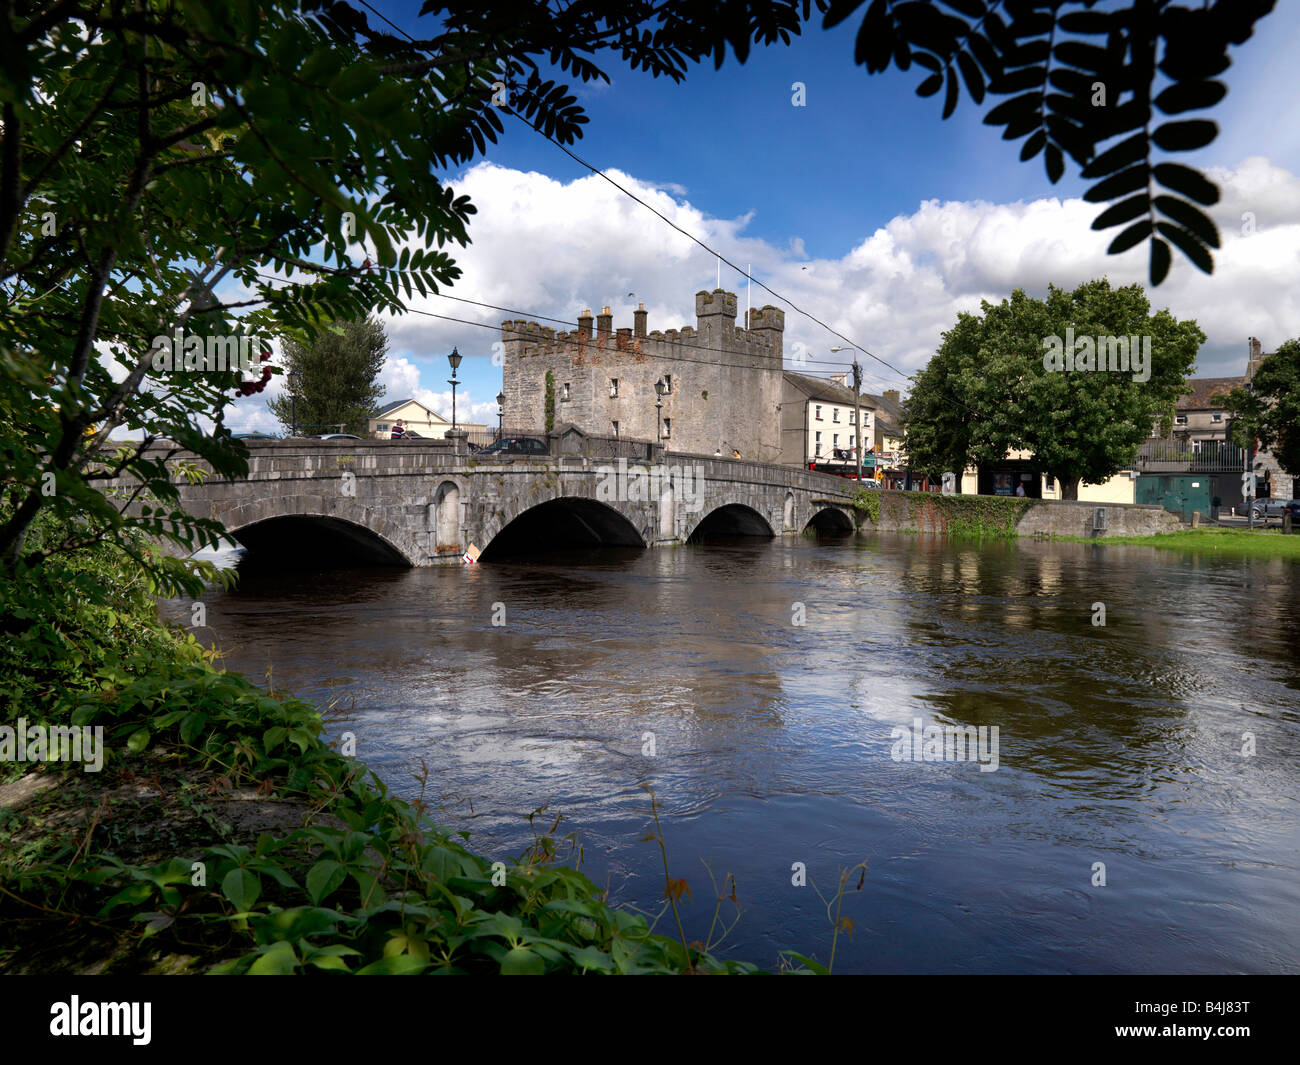 Burtown House and Gardens, Athy, Co. Kildare